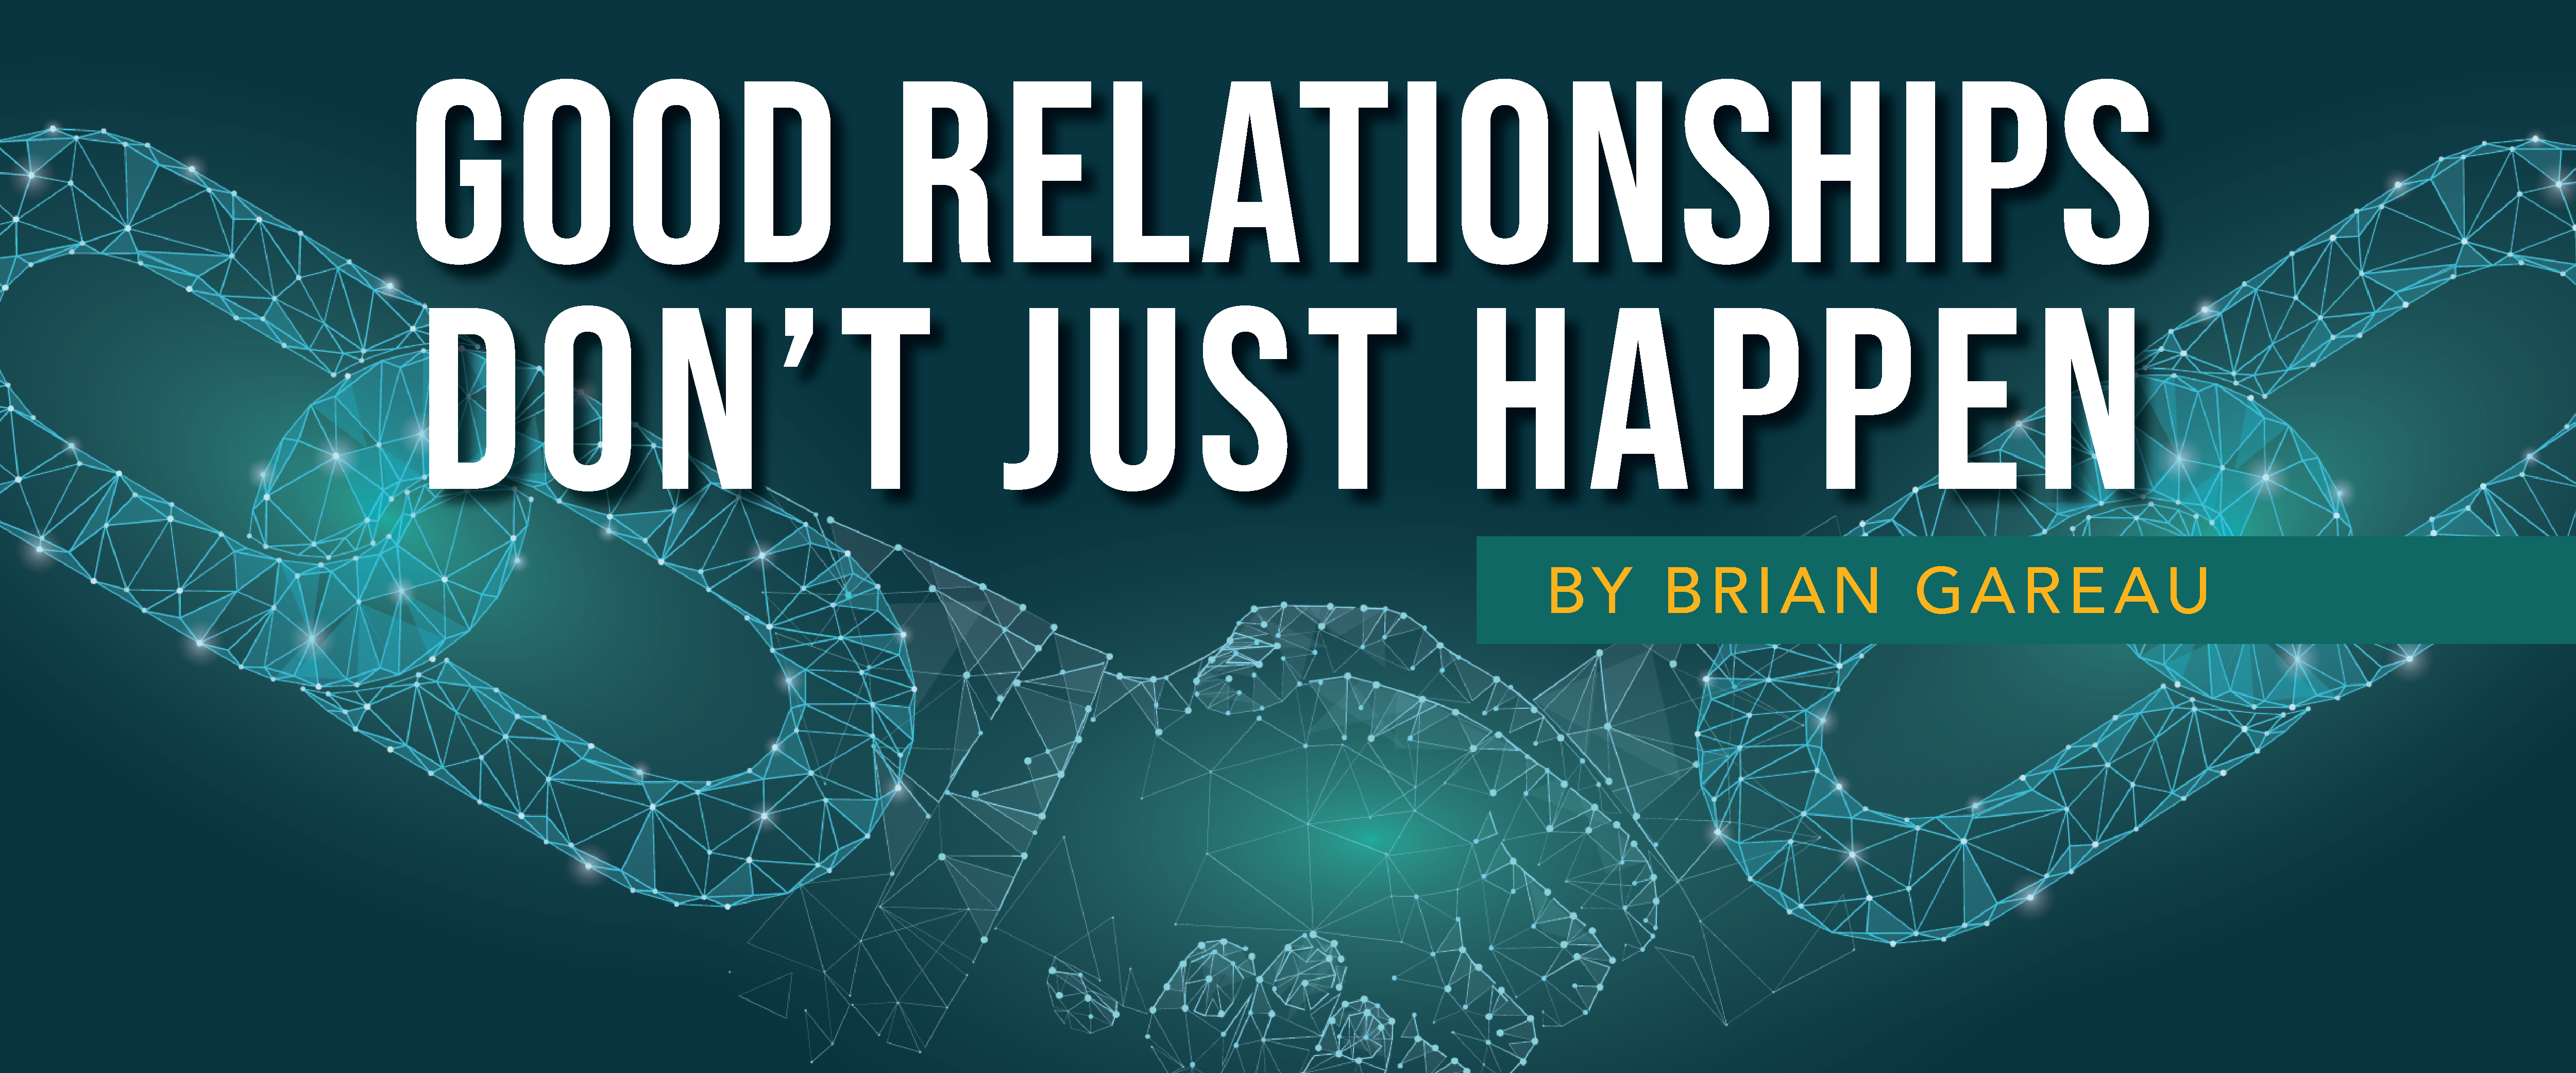 good_relationships_banner